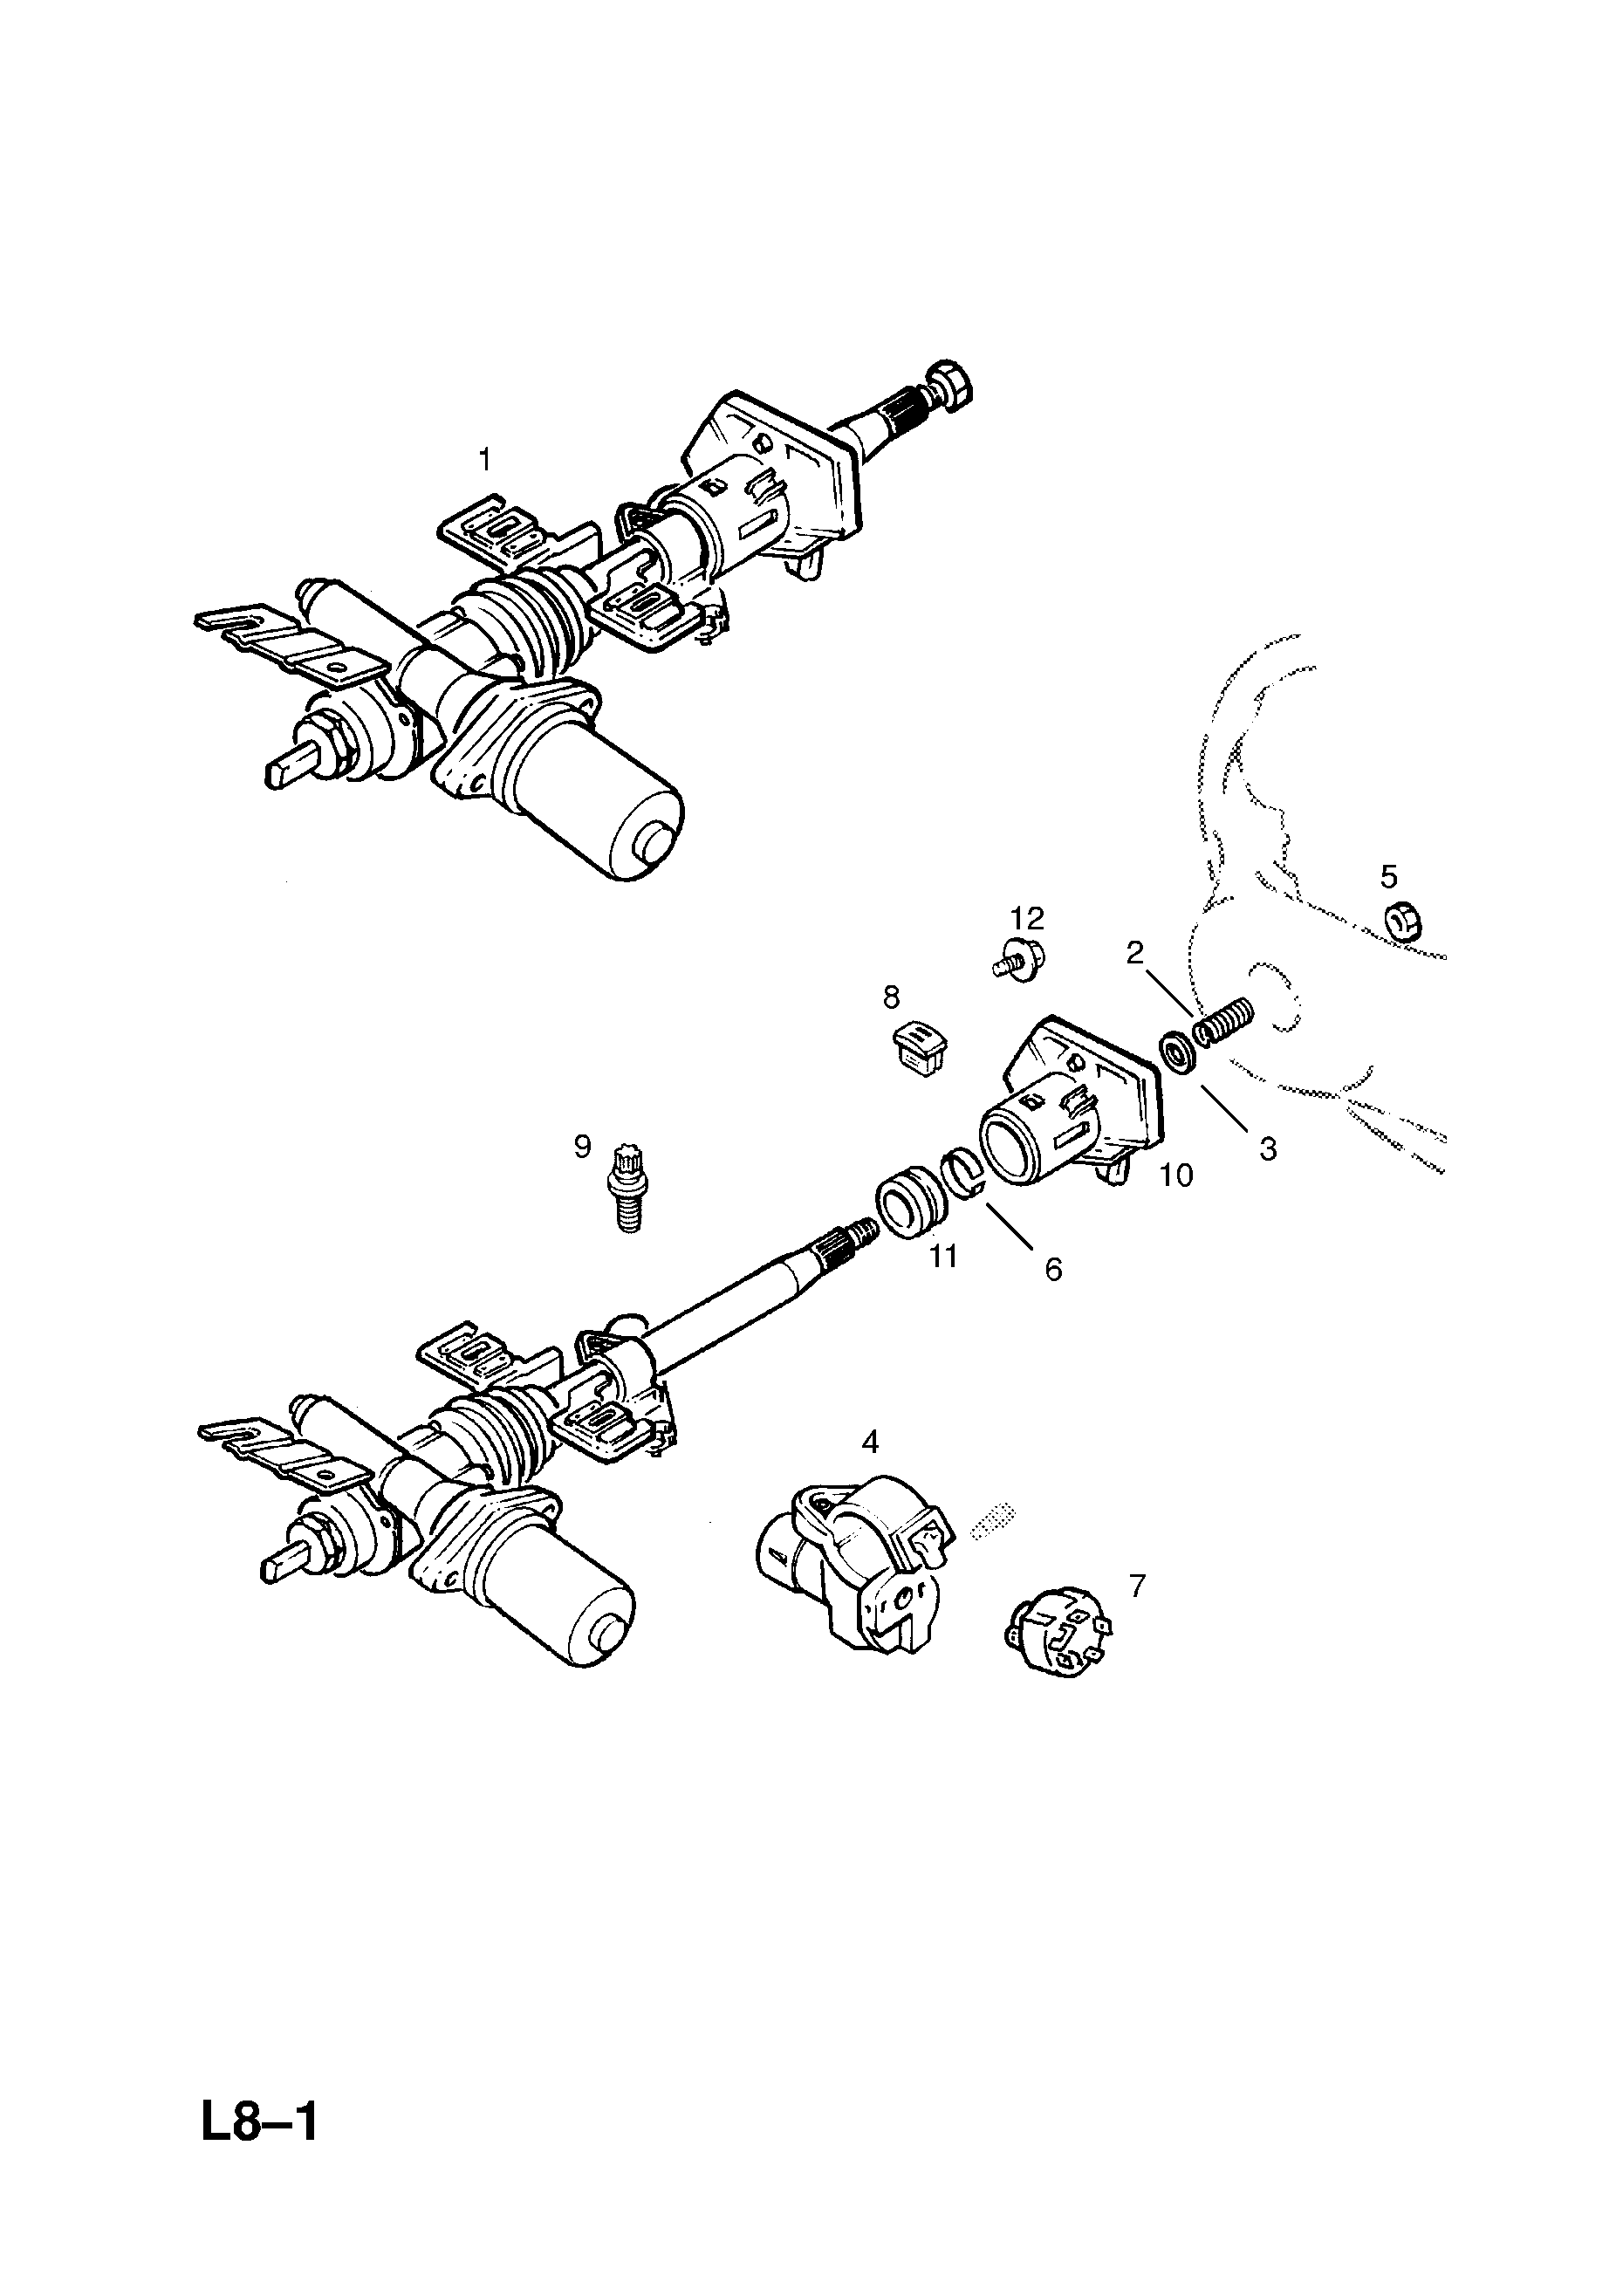 Steering Column Contd For Electronic Power Steering